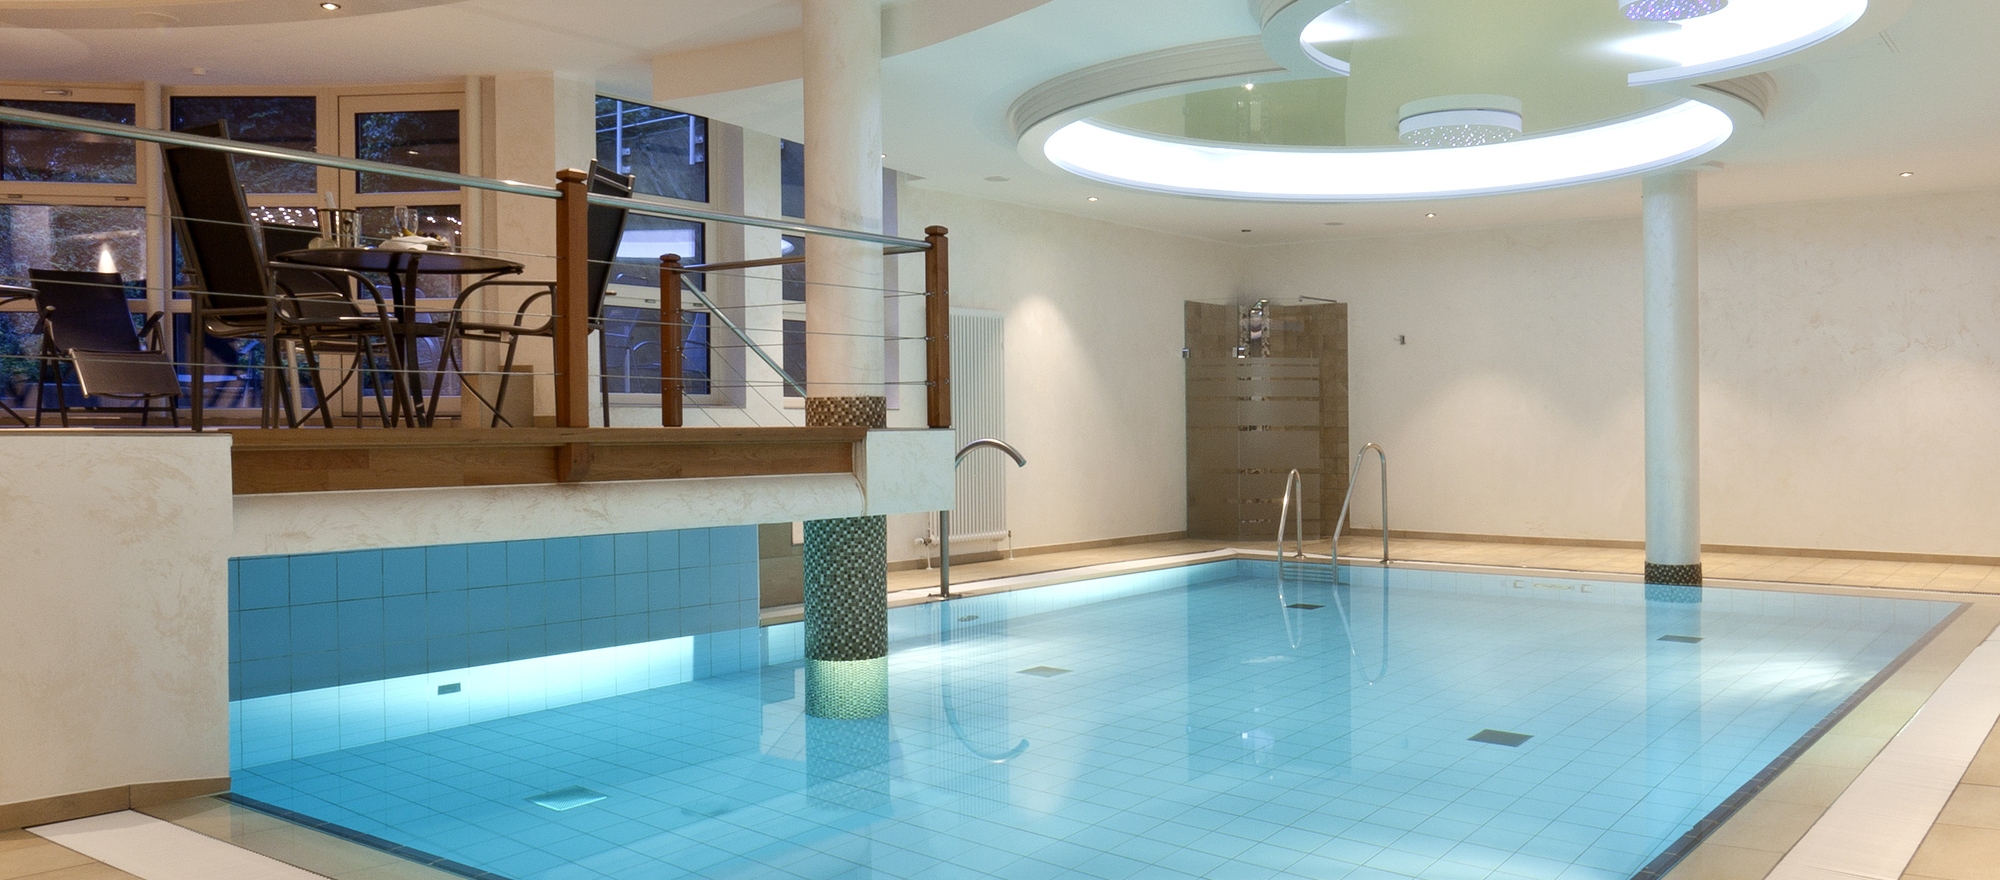 Attractive designed pool area in the 4-star hotel Ringhotel Am Stadtpark in Luenen